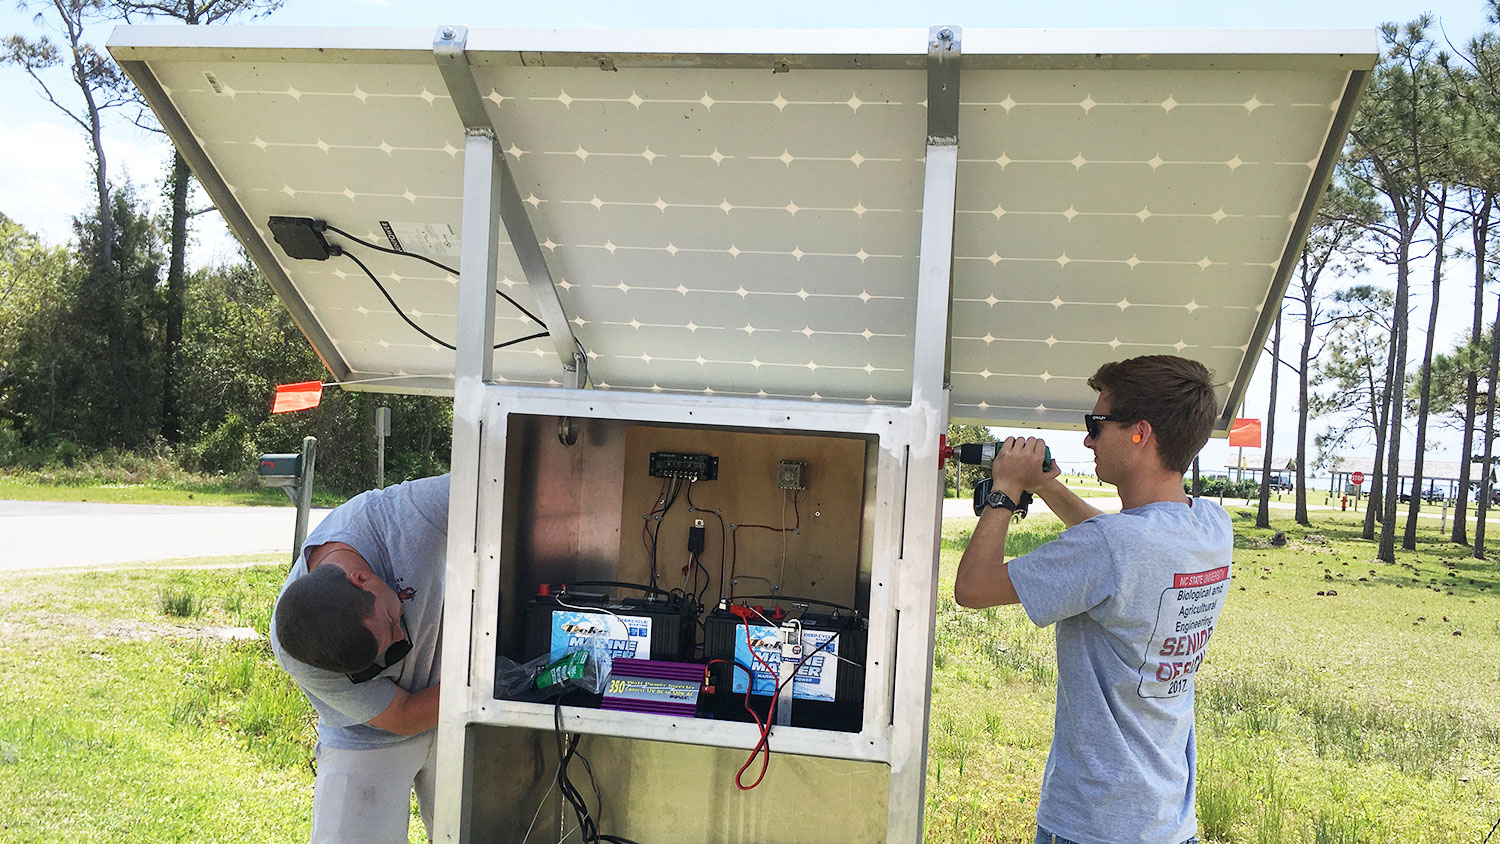 BAE senior design students work on the solar-powered pump they built and installed on Harkers Island